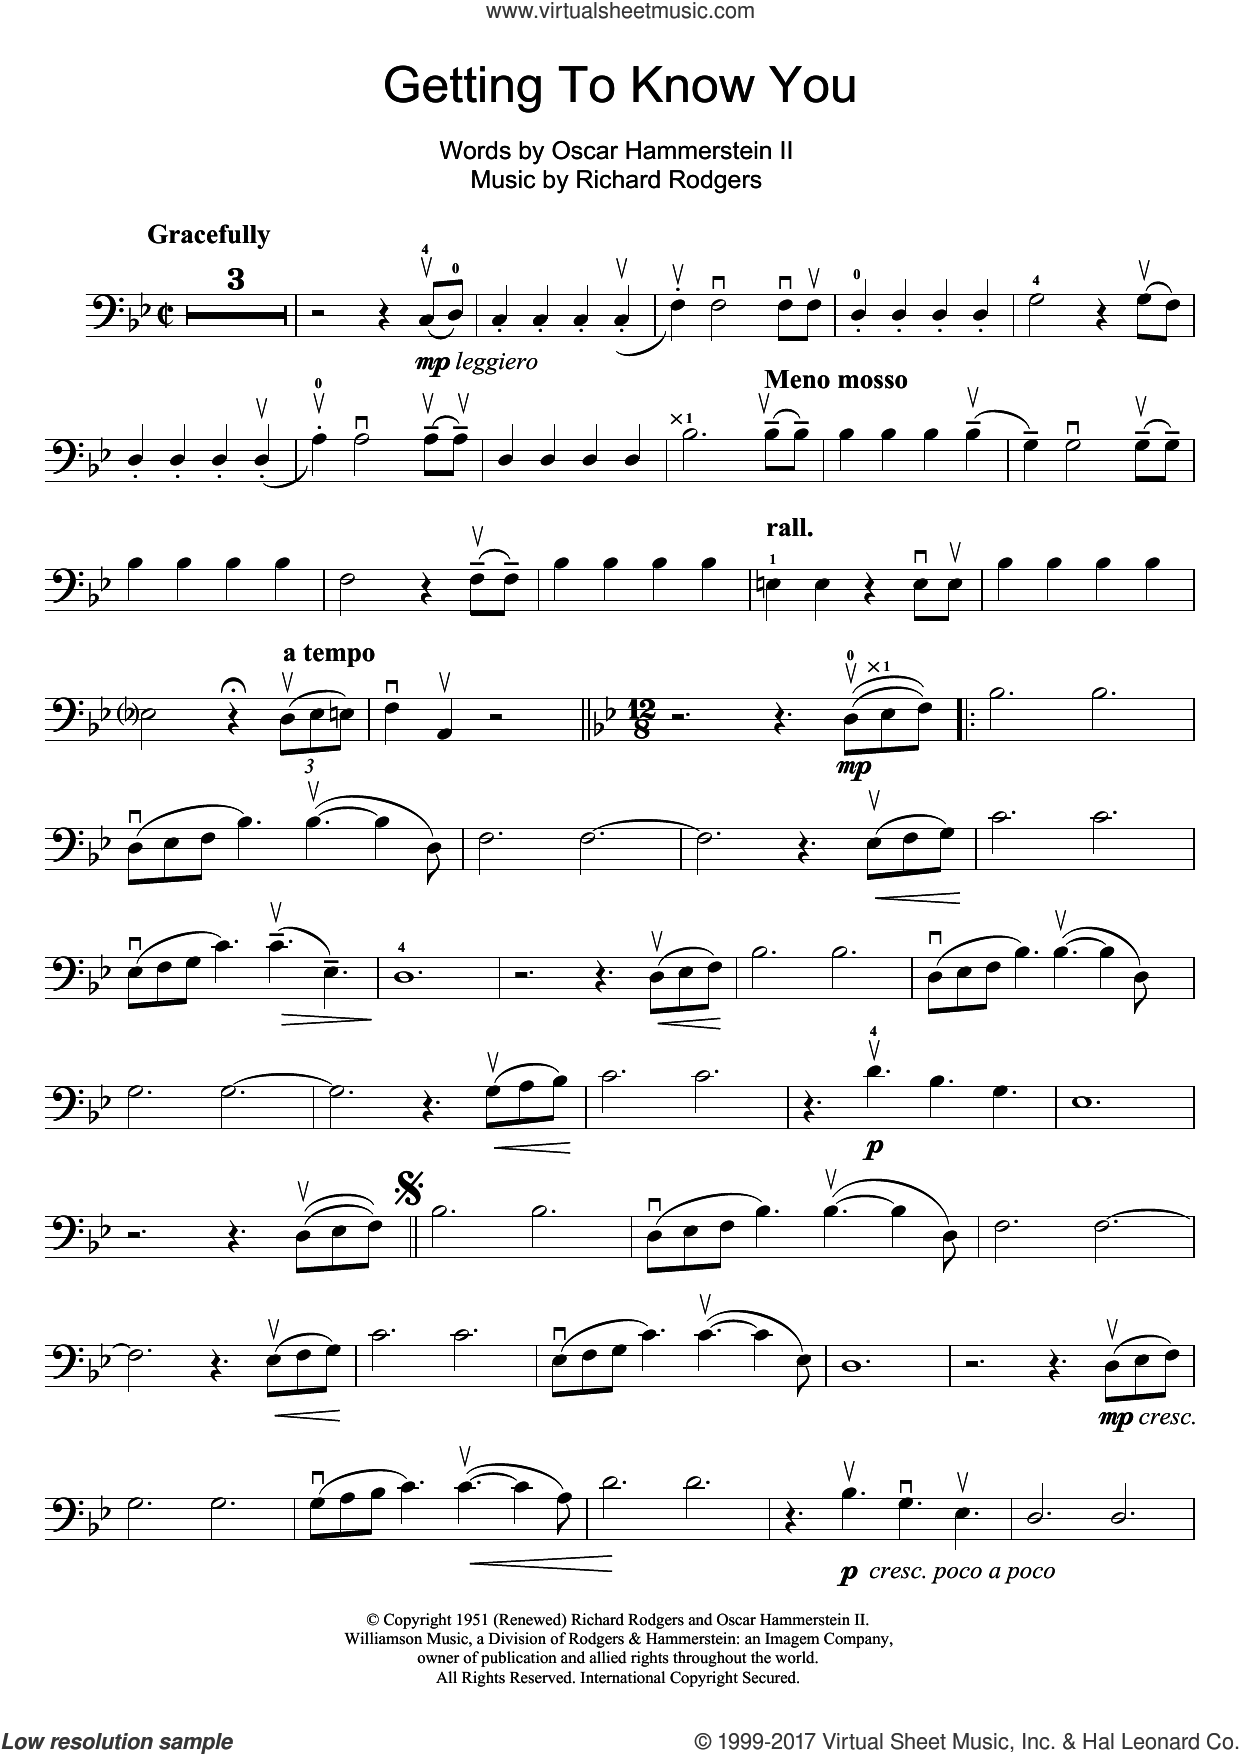 Getting To Know You (from The King And I) sheet music for cello solo by Rodgers & Hammerstein, Richard Rodgers and Oscar II Hammerstein, intermediate skill level